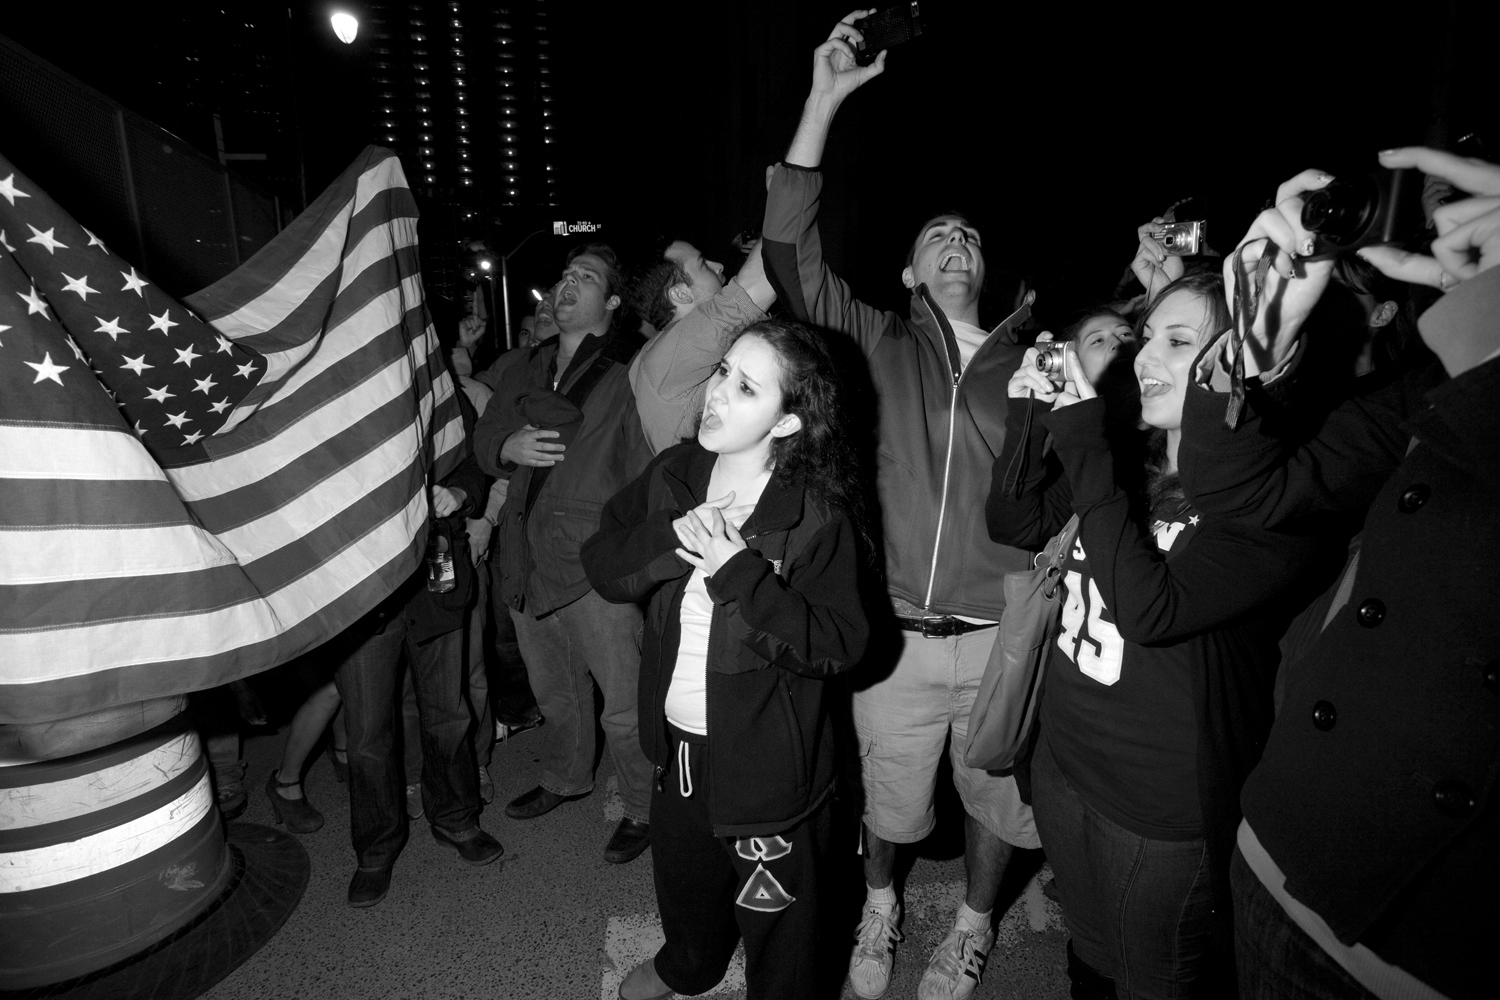 Emotions ran high among those gathering from solemn to excited. A young student Kathleen Lampert sings along to God Bless America with the crowd.